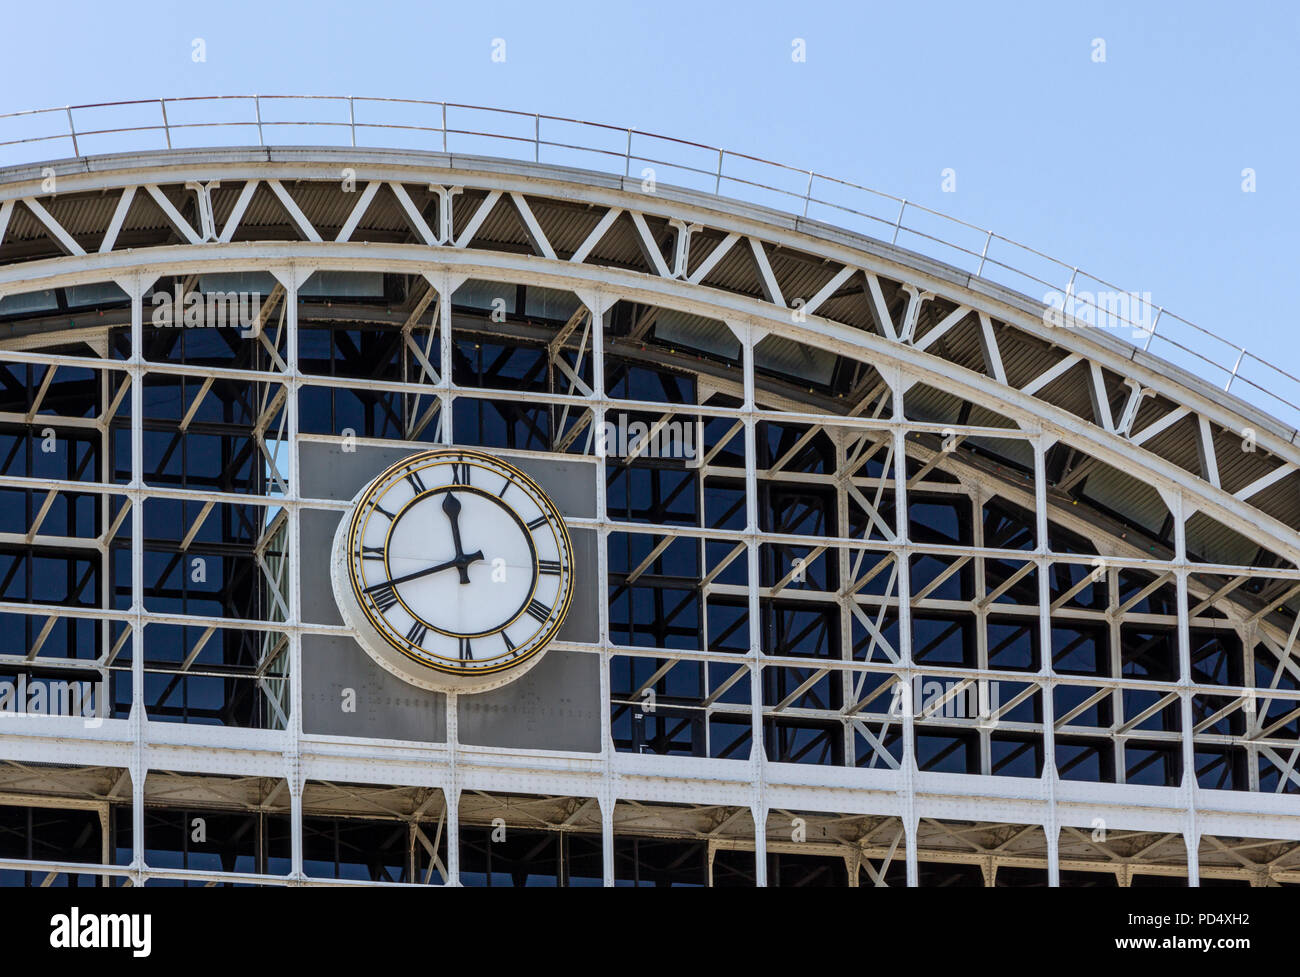 Manchester Central, formerly G-Mex exhibition centre in Manchester. - Stock Image